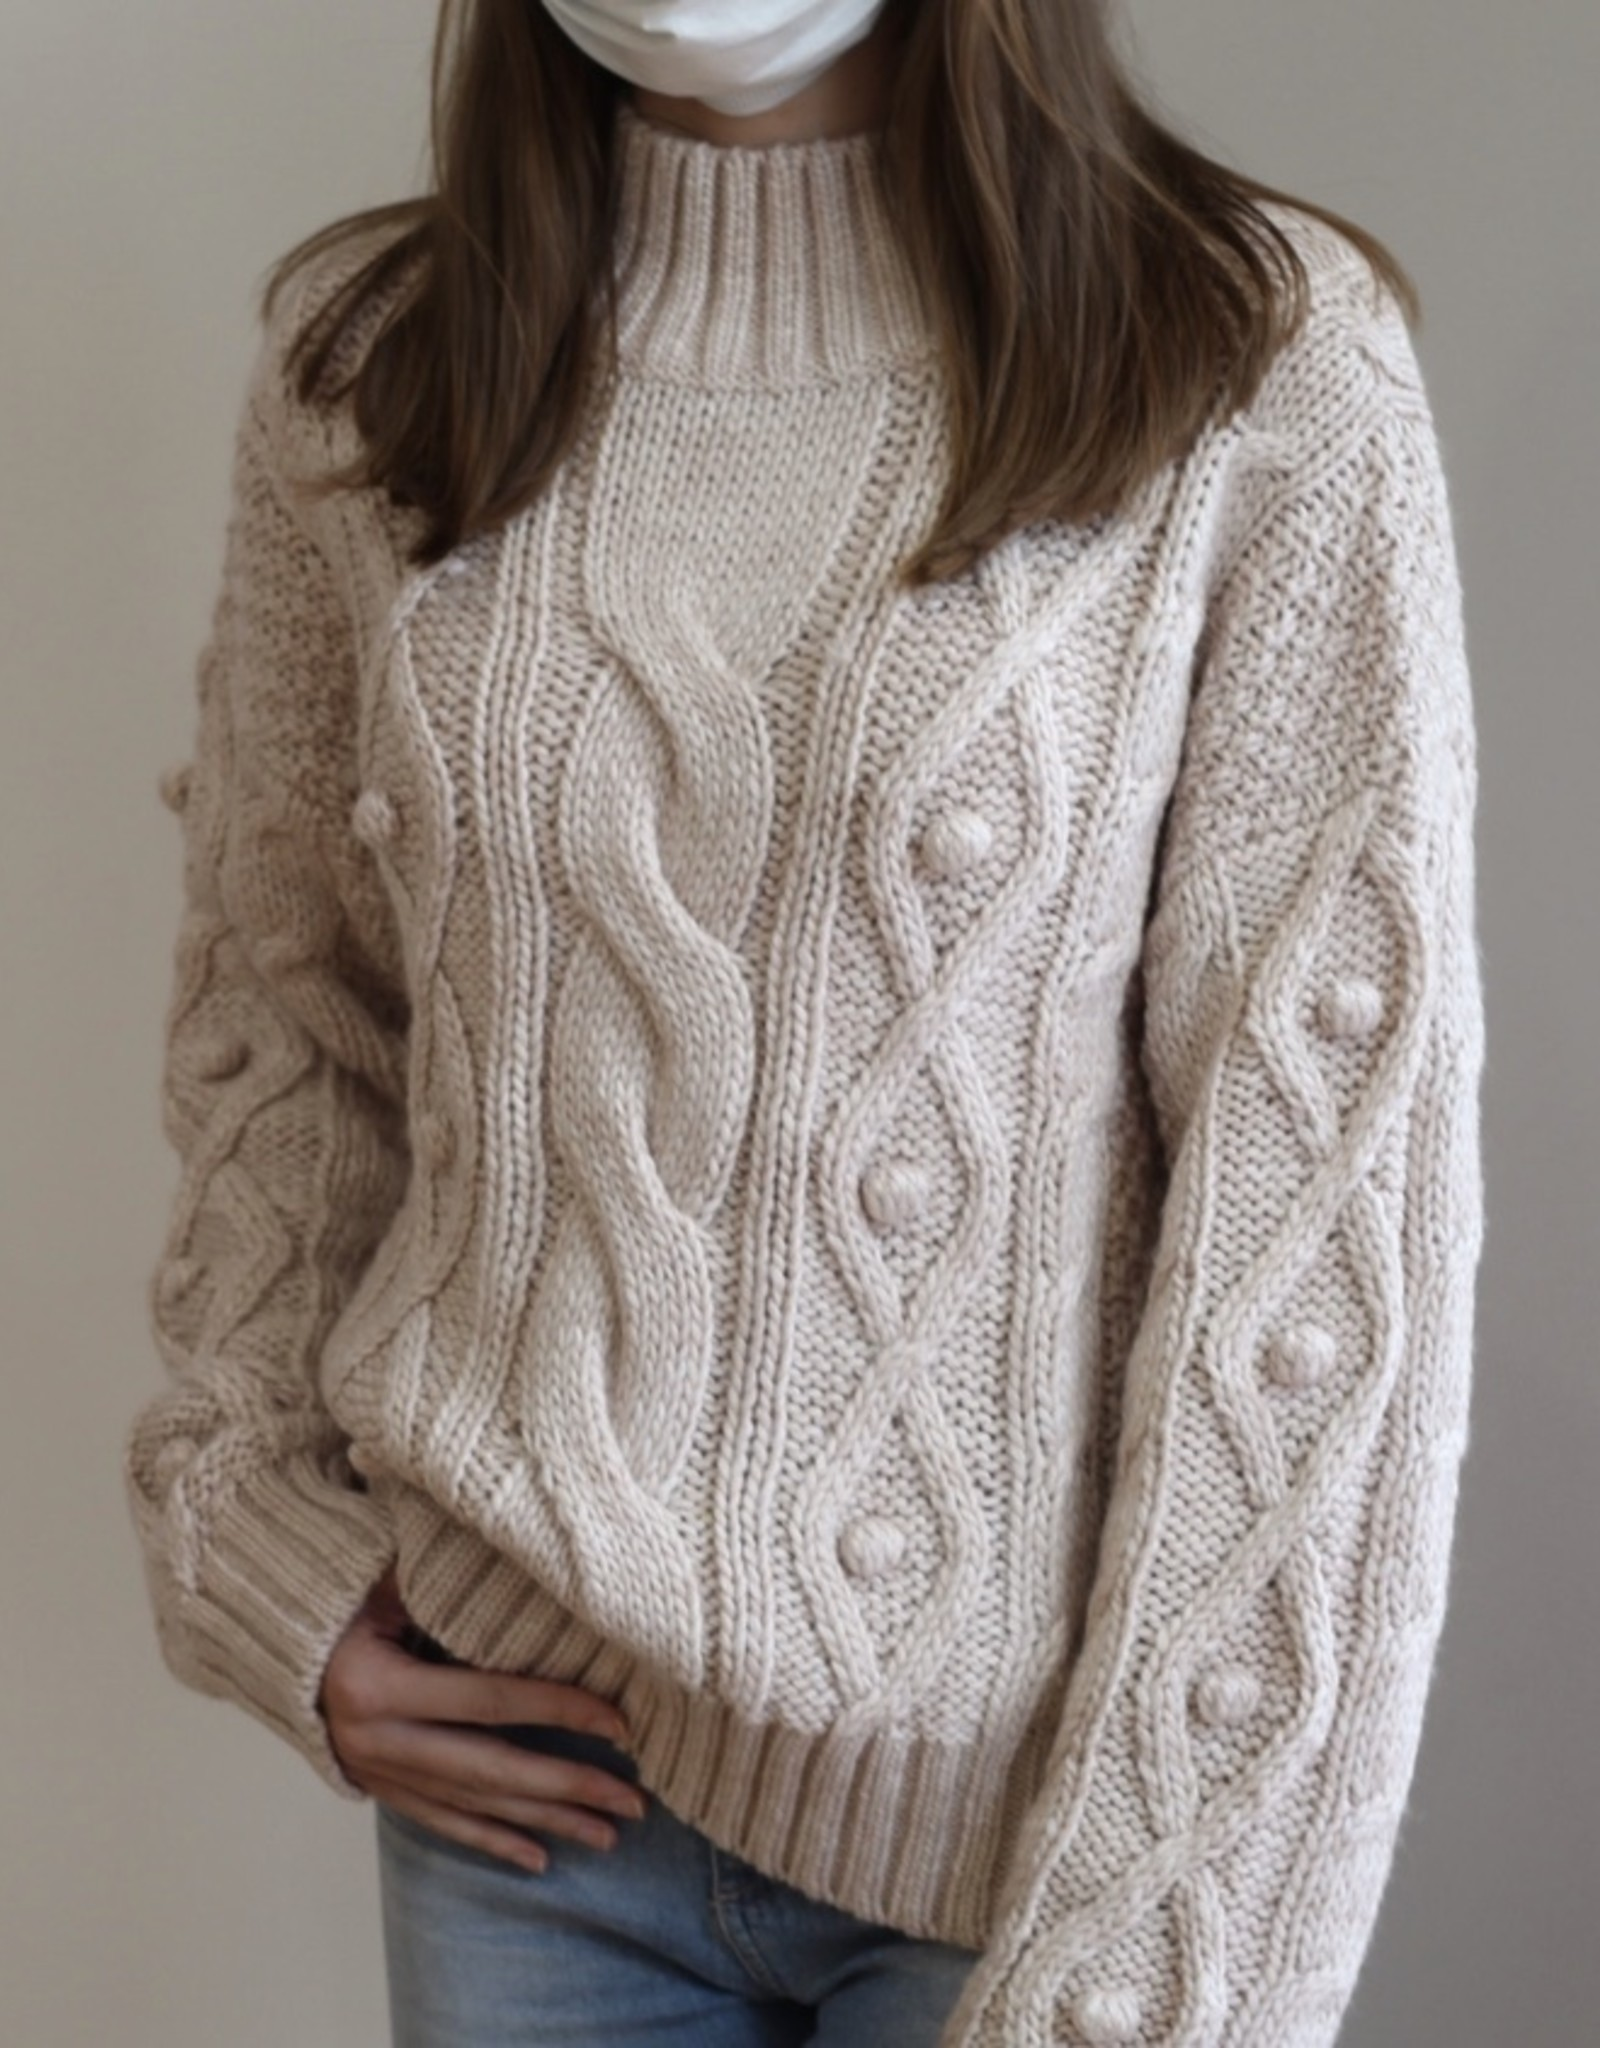 Marie Oliver Cecile Bauble Sweater